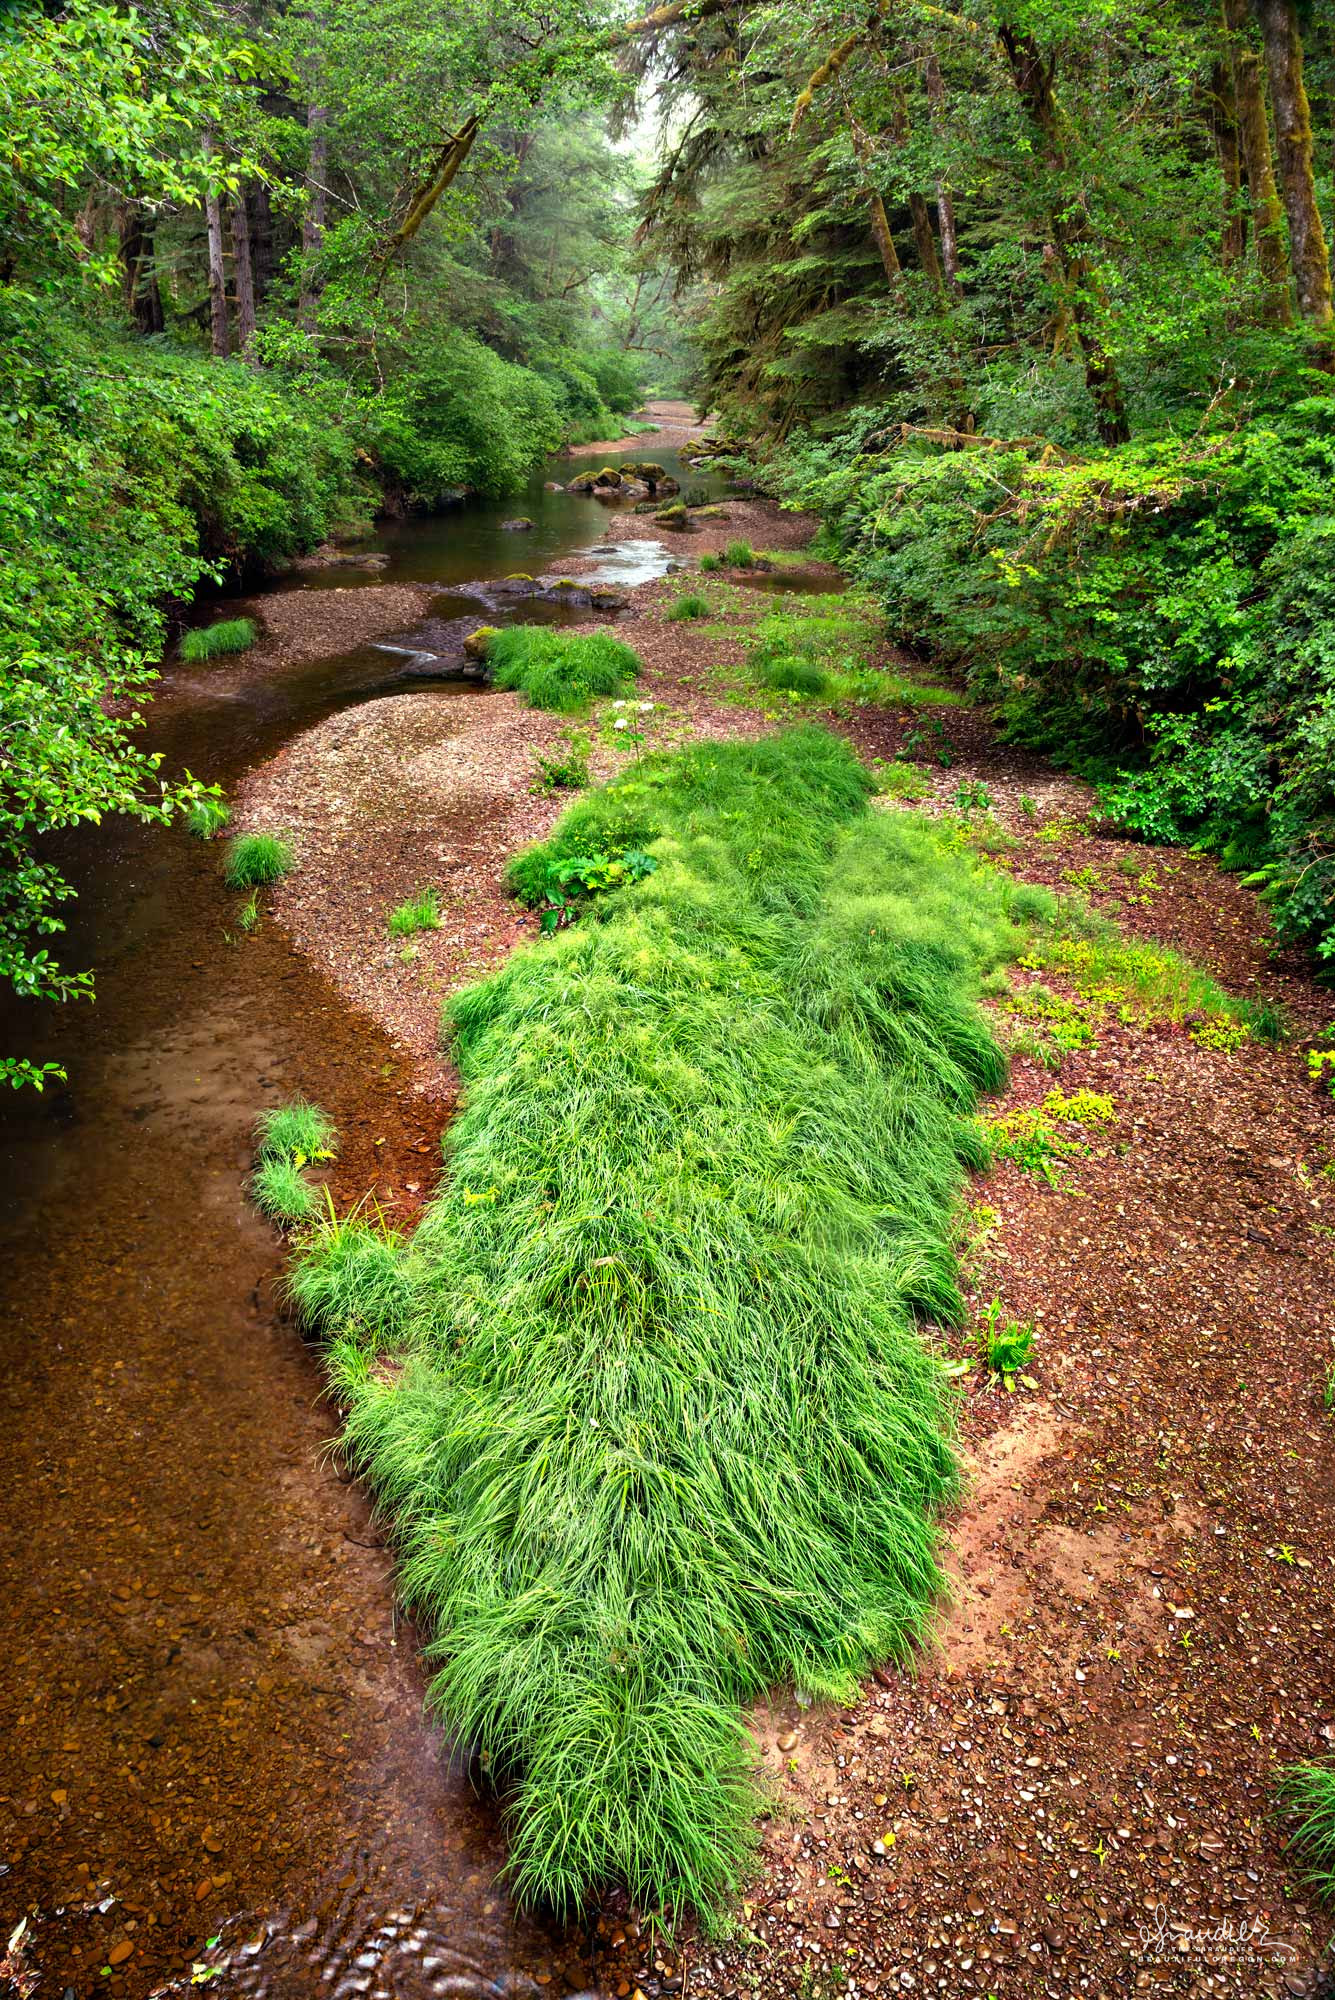 Millicoma River, Elliott State Forest. Coos County, Oregon Coast Range.